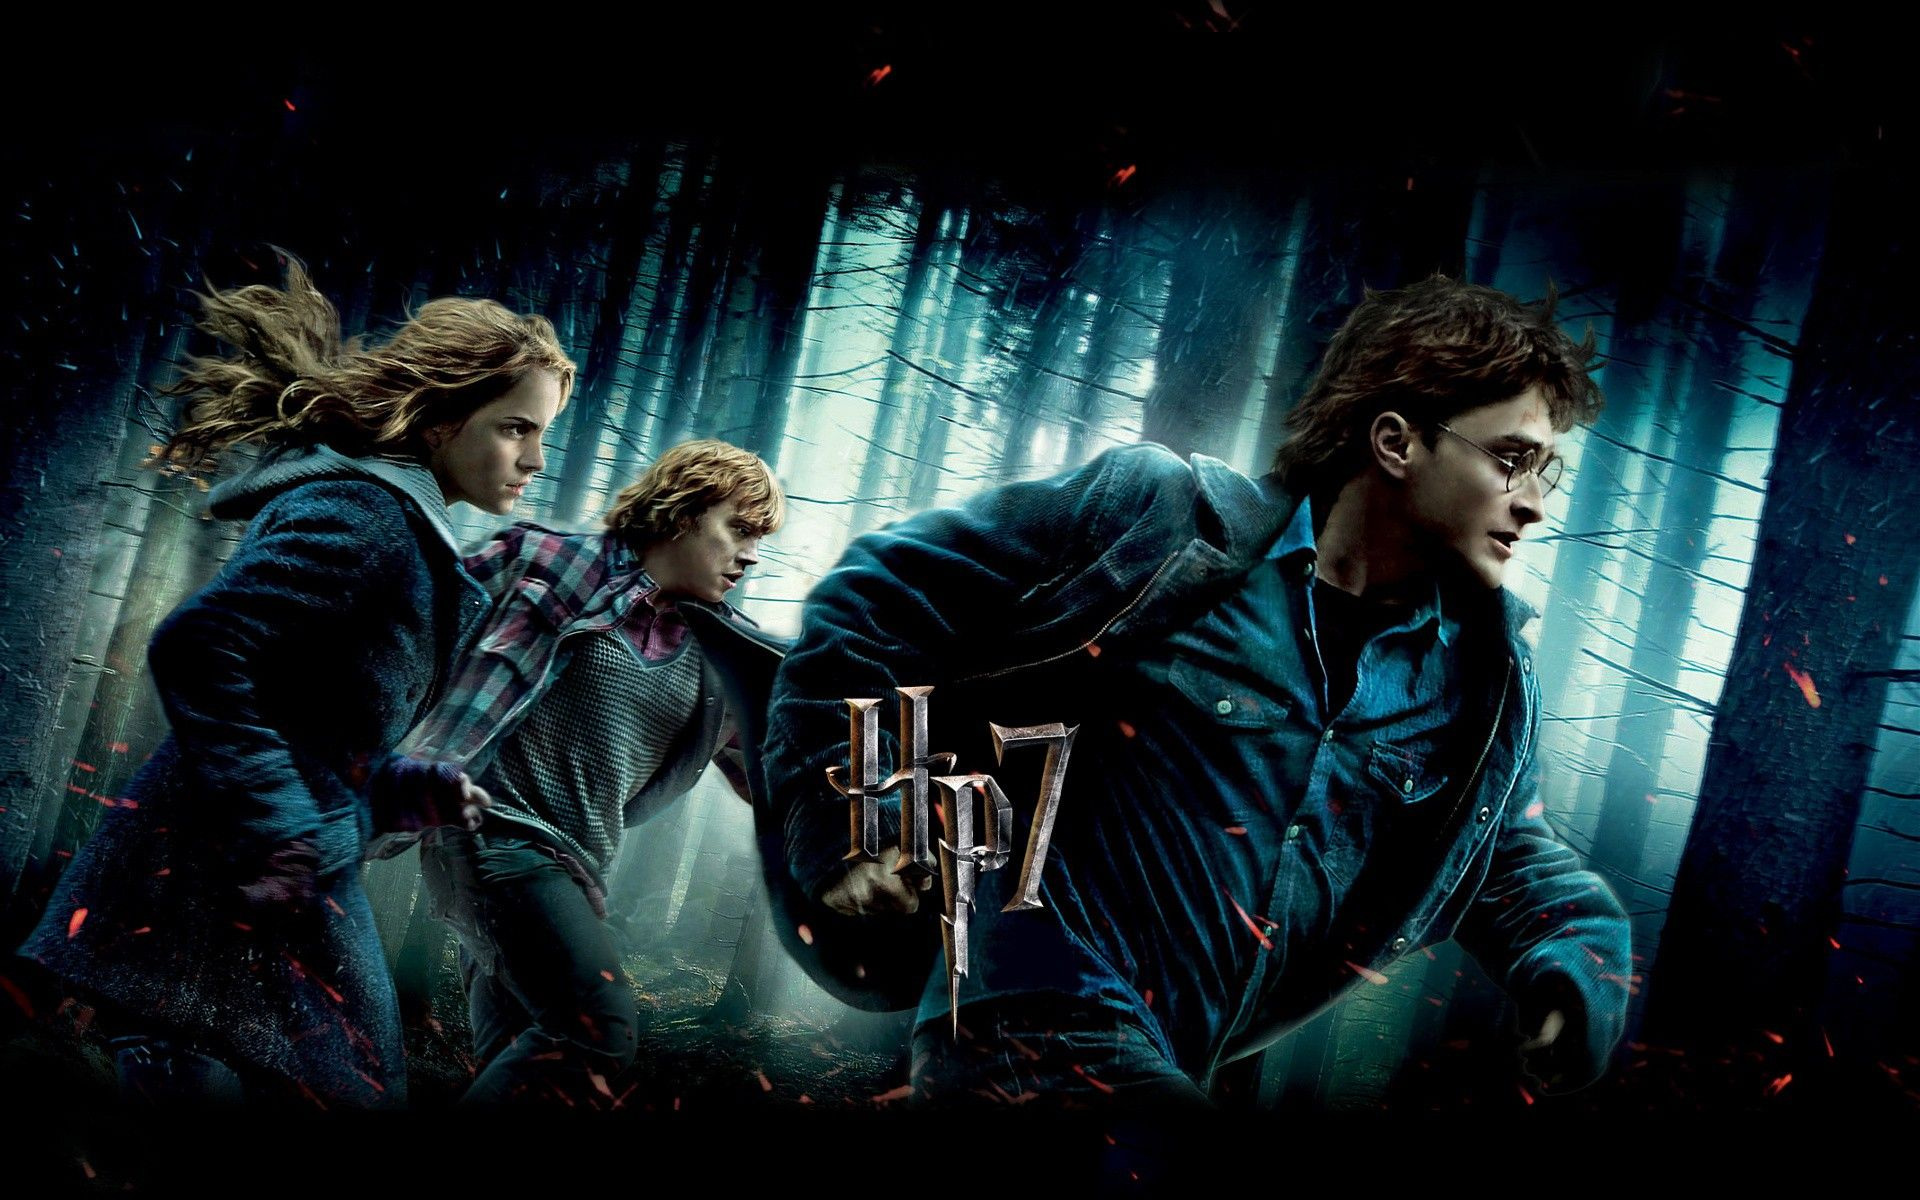 Harry Potter Wallpapers Find best latest Harry Potter Wallpapers for your PC desktop background & mobile phones.